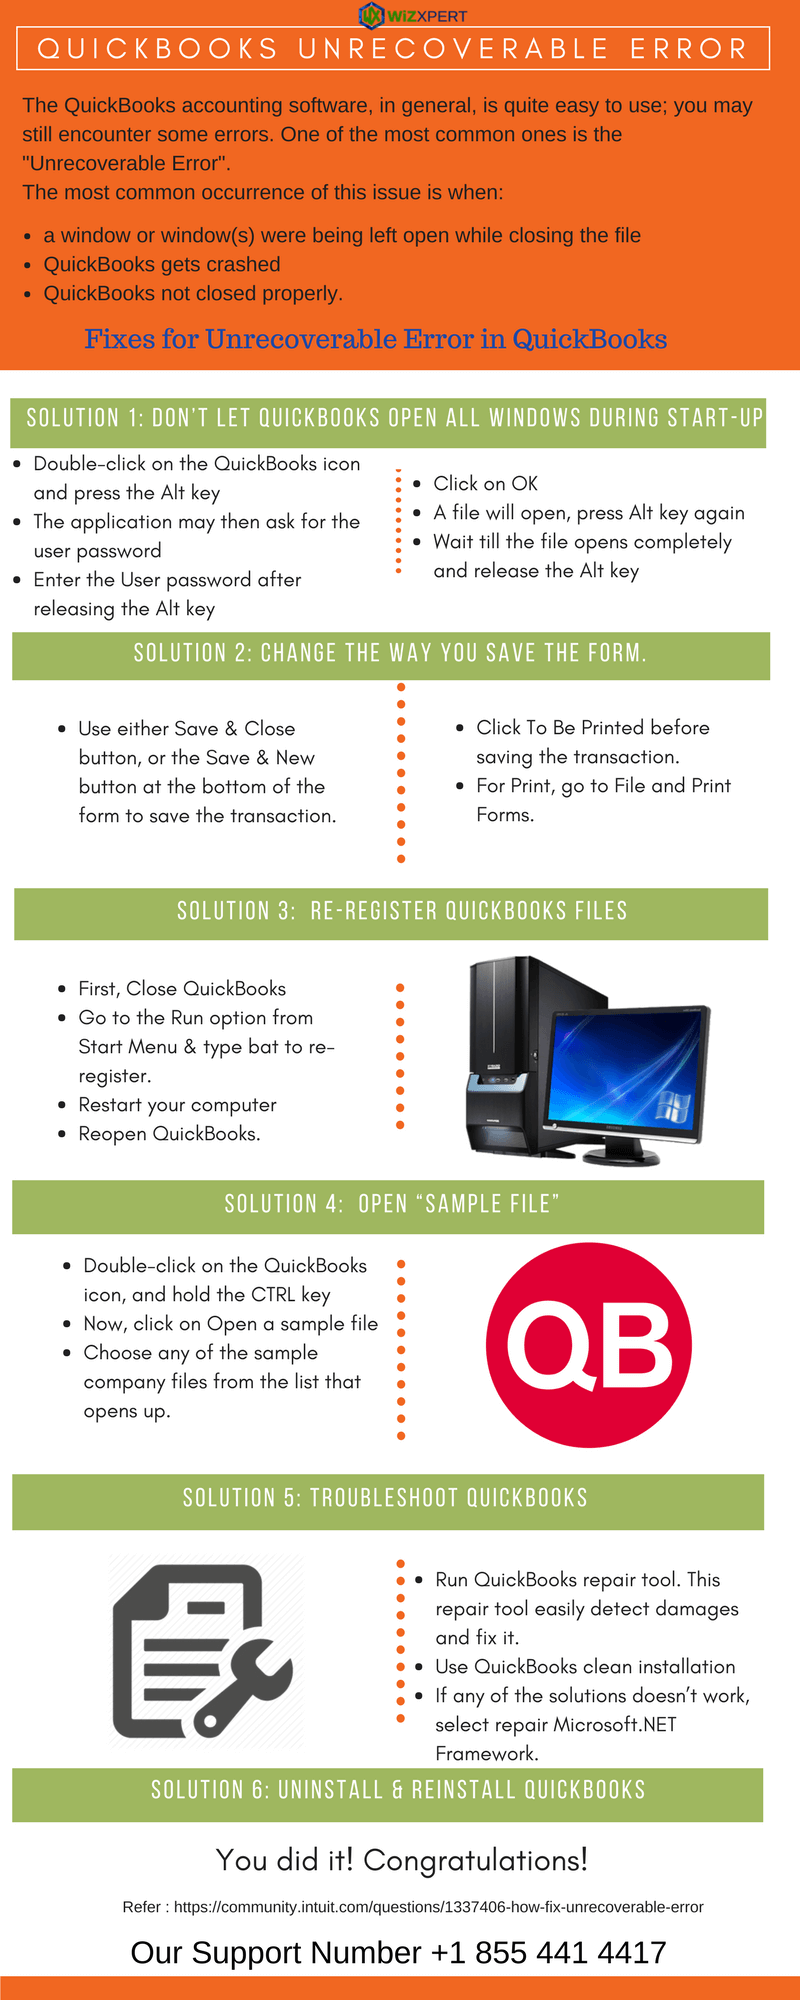 QuickBooks Unrecoverable Error Infogrphics